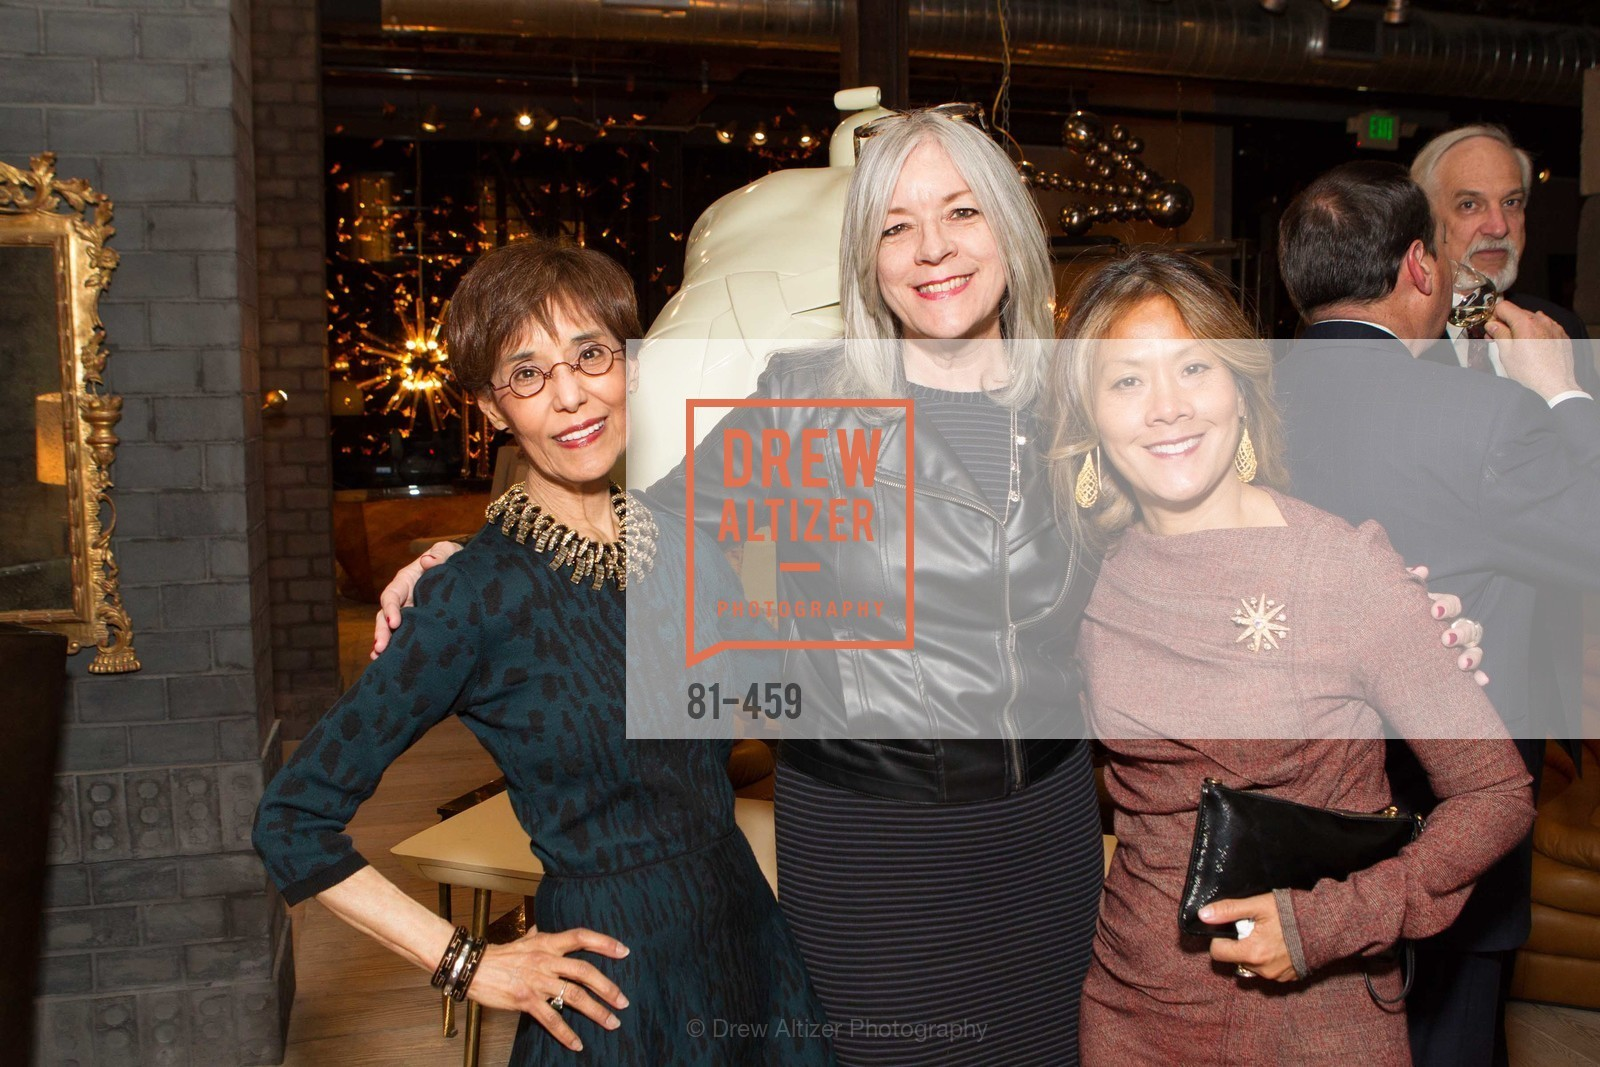 Beatrice Wood, Christy Lopez, Virginia Price, 2014 SAN FRANCISCO BALLET OPENING NIGHT GALA Patron and Sponsor Reception, US. US, January 14th, 2014,Drew Altizer, Drew Altizer Photography, full-service agency, private events, San Francisco photographer, photographer california